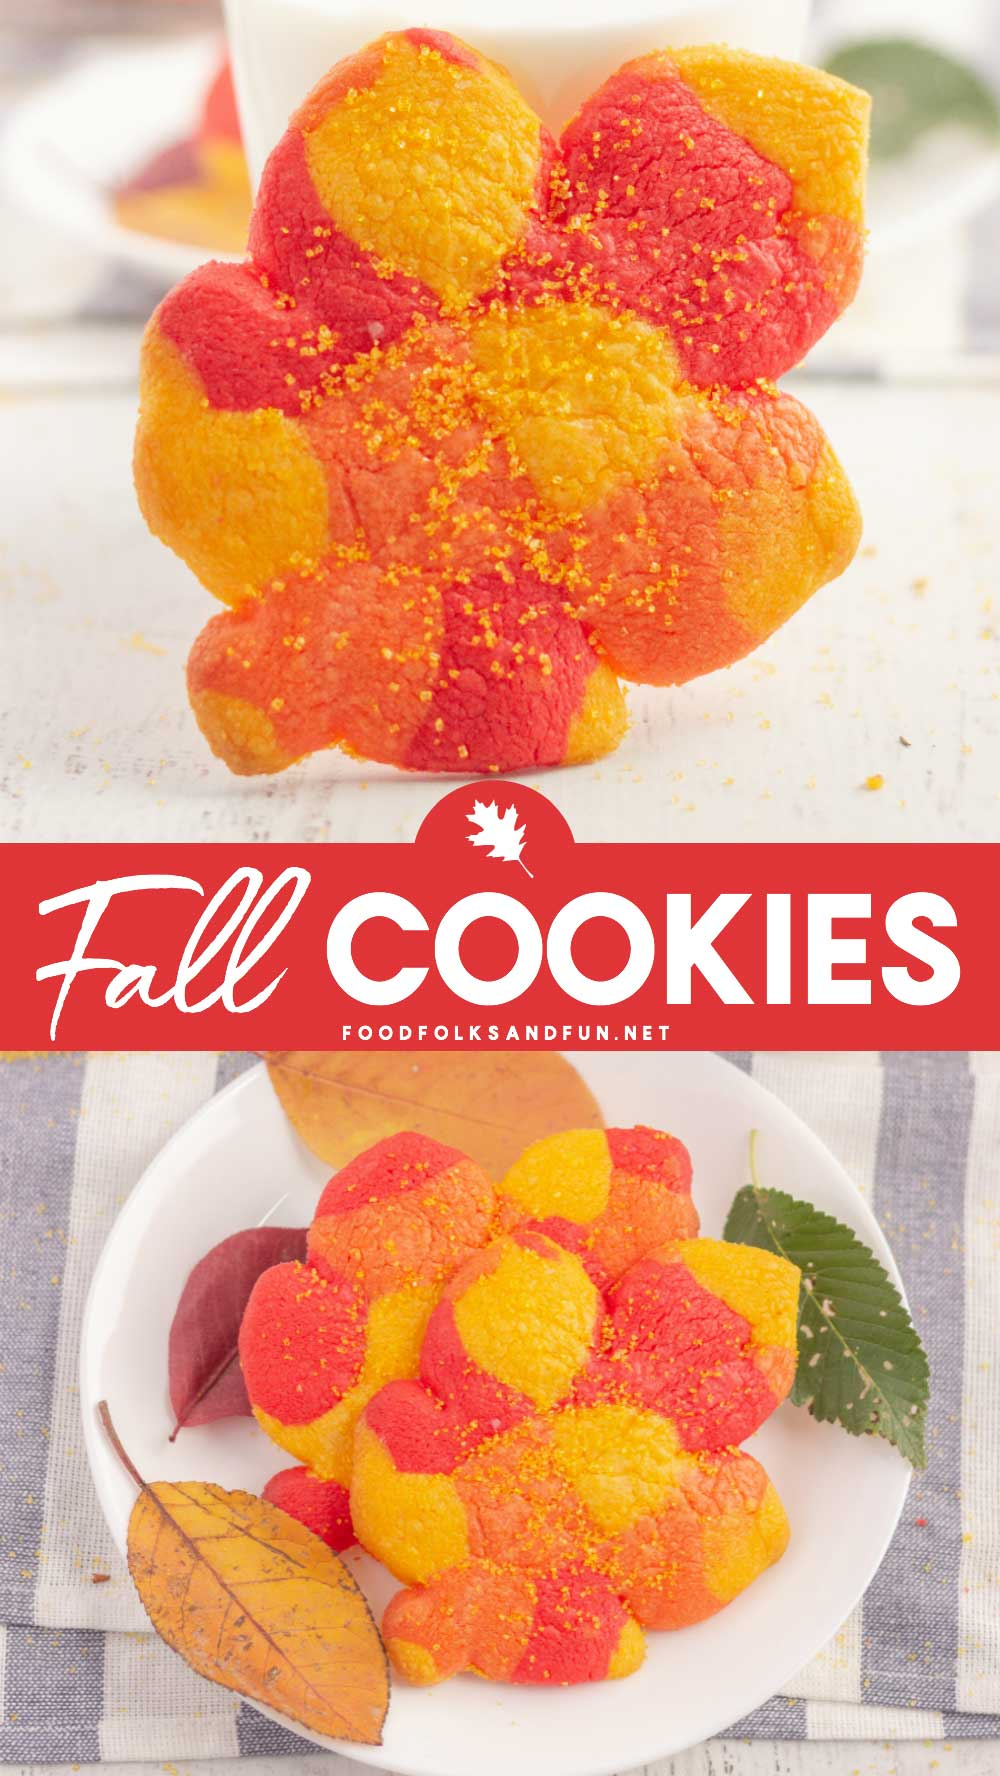 Amazing Fall Cookies recipe that's easy to make!